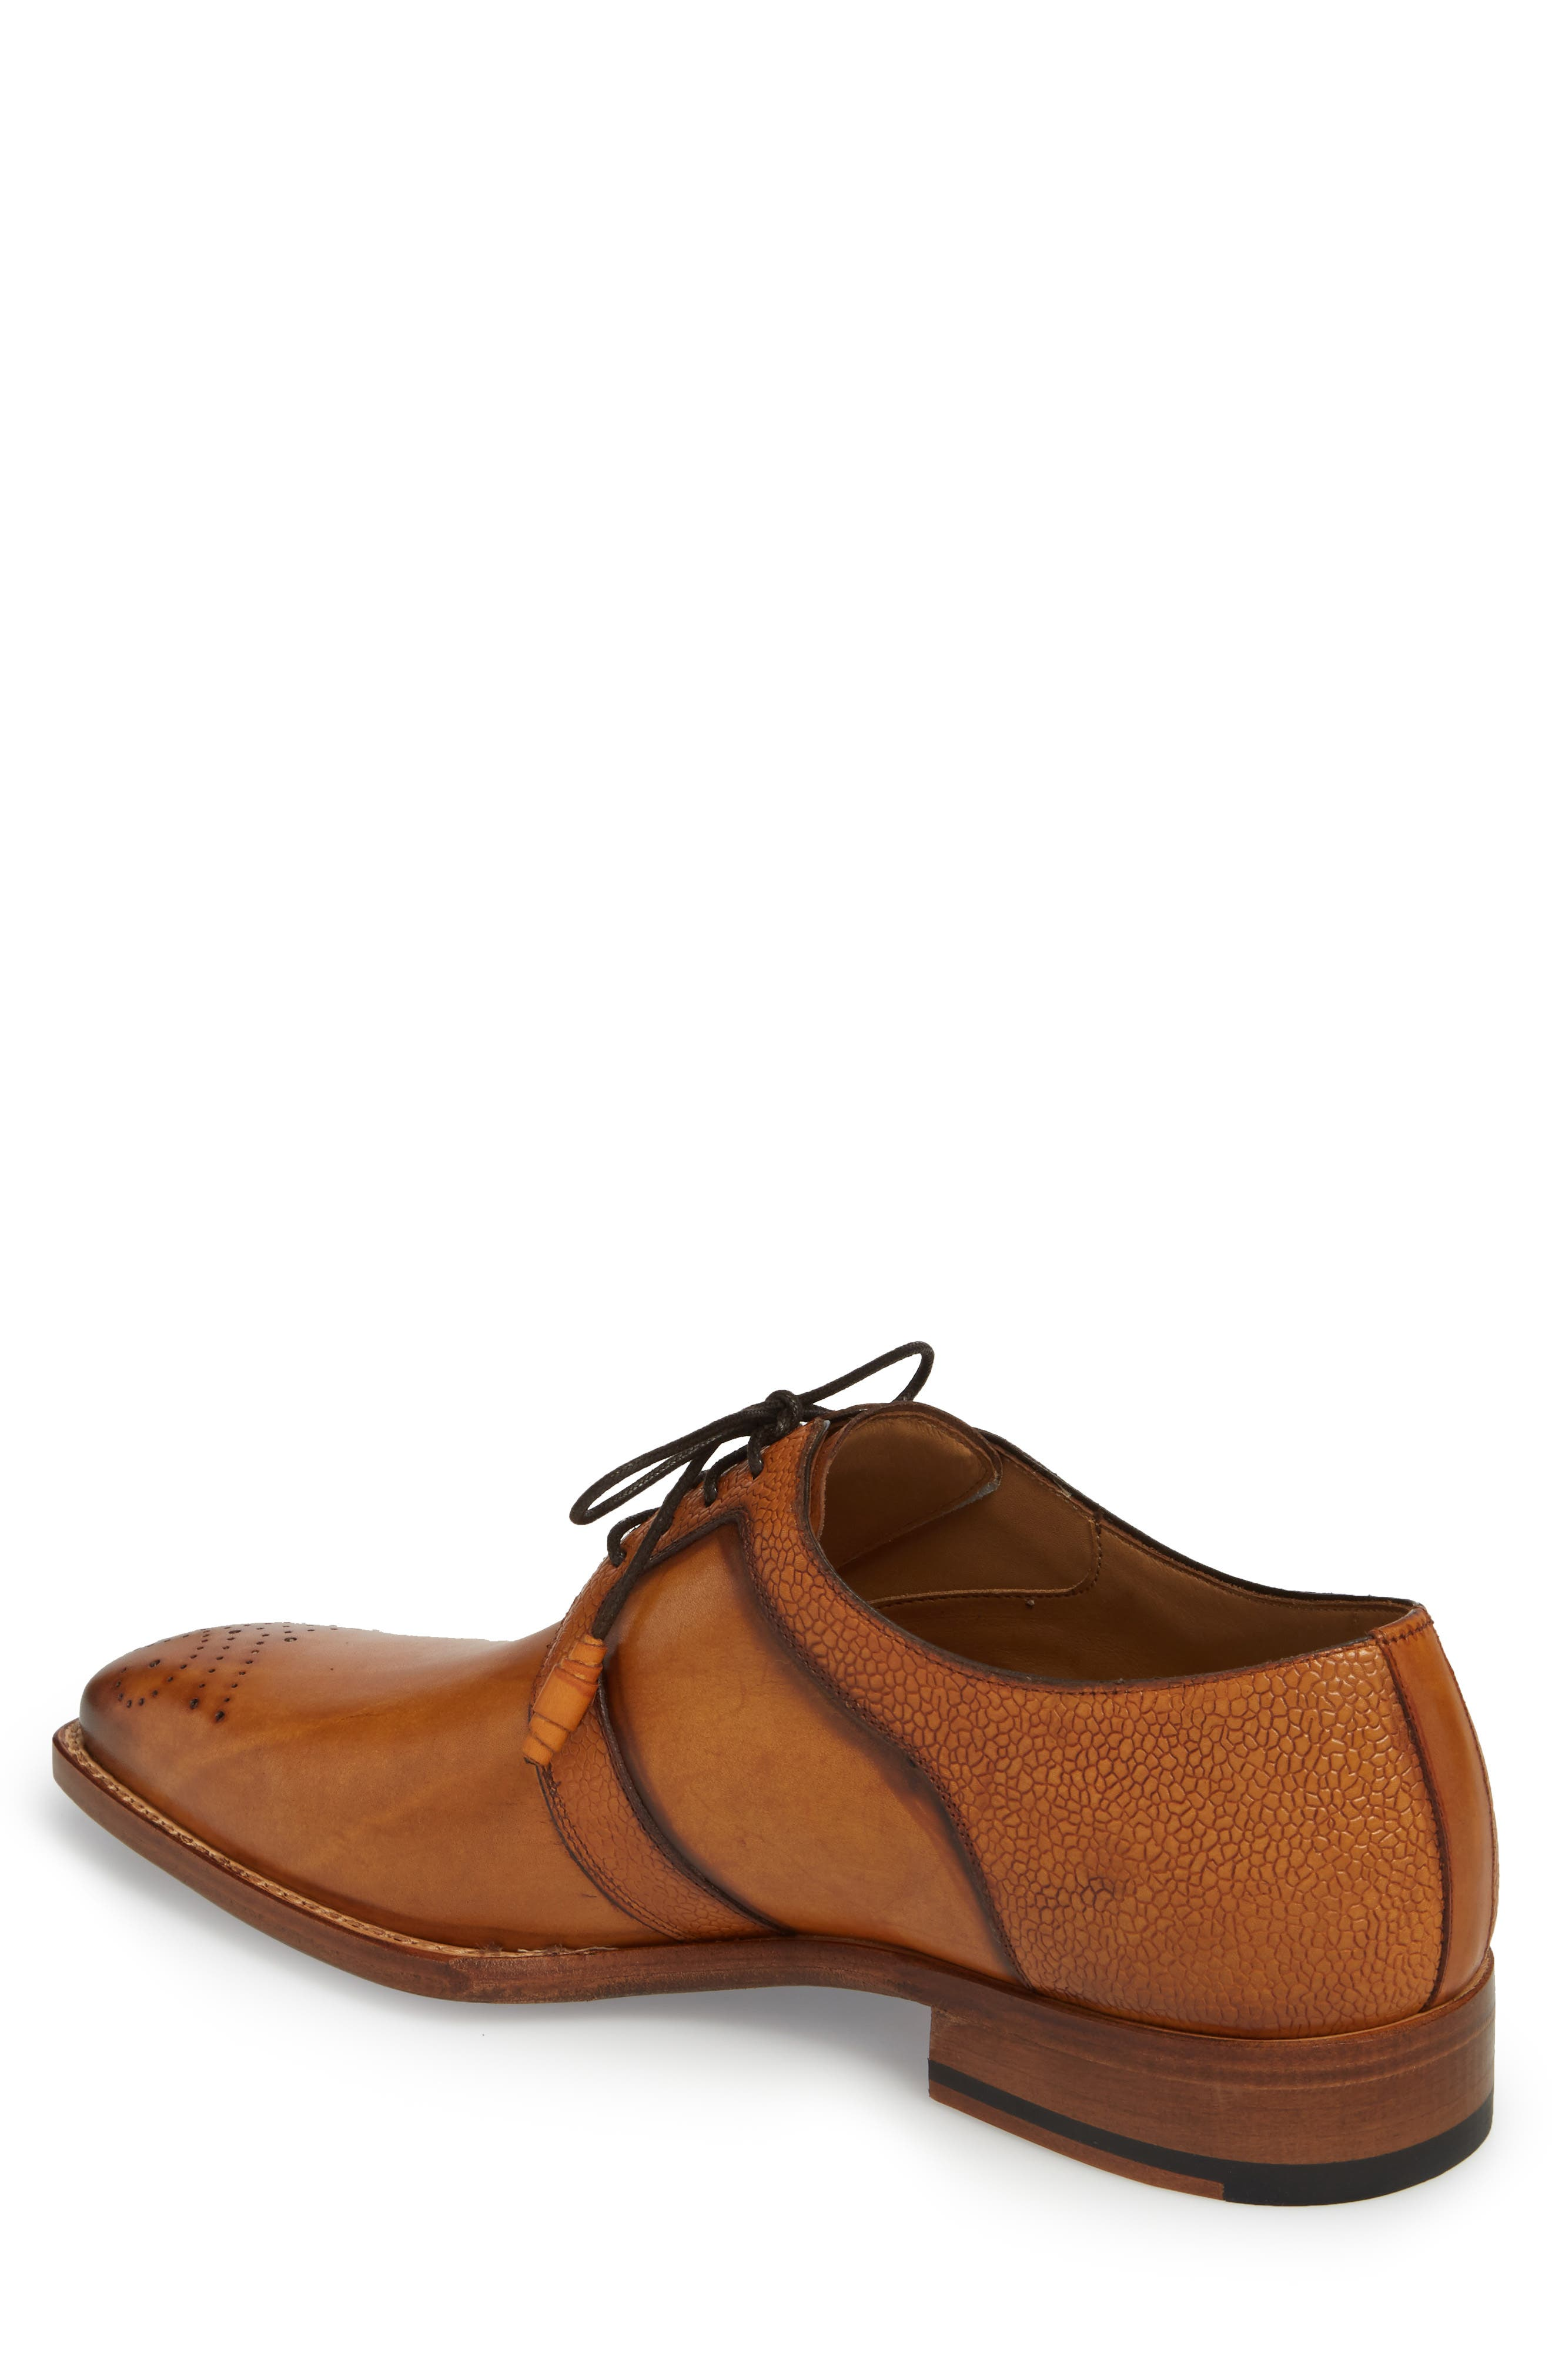 Saturno Medallion Toe Derby,                             Alternate thumbnail 2, color,                             TAN LEATHER